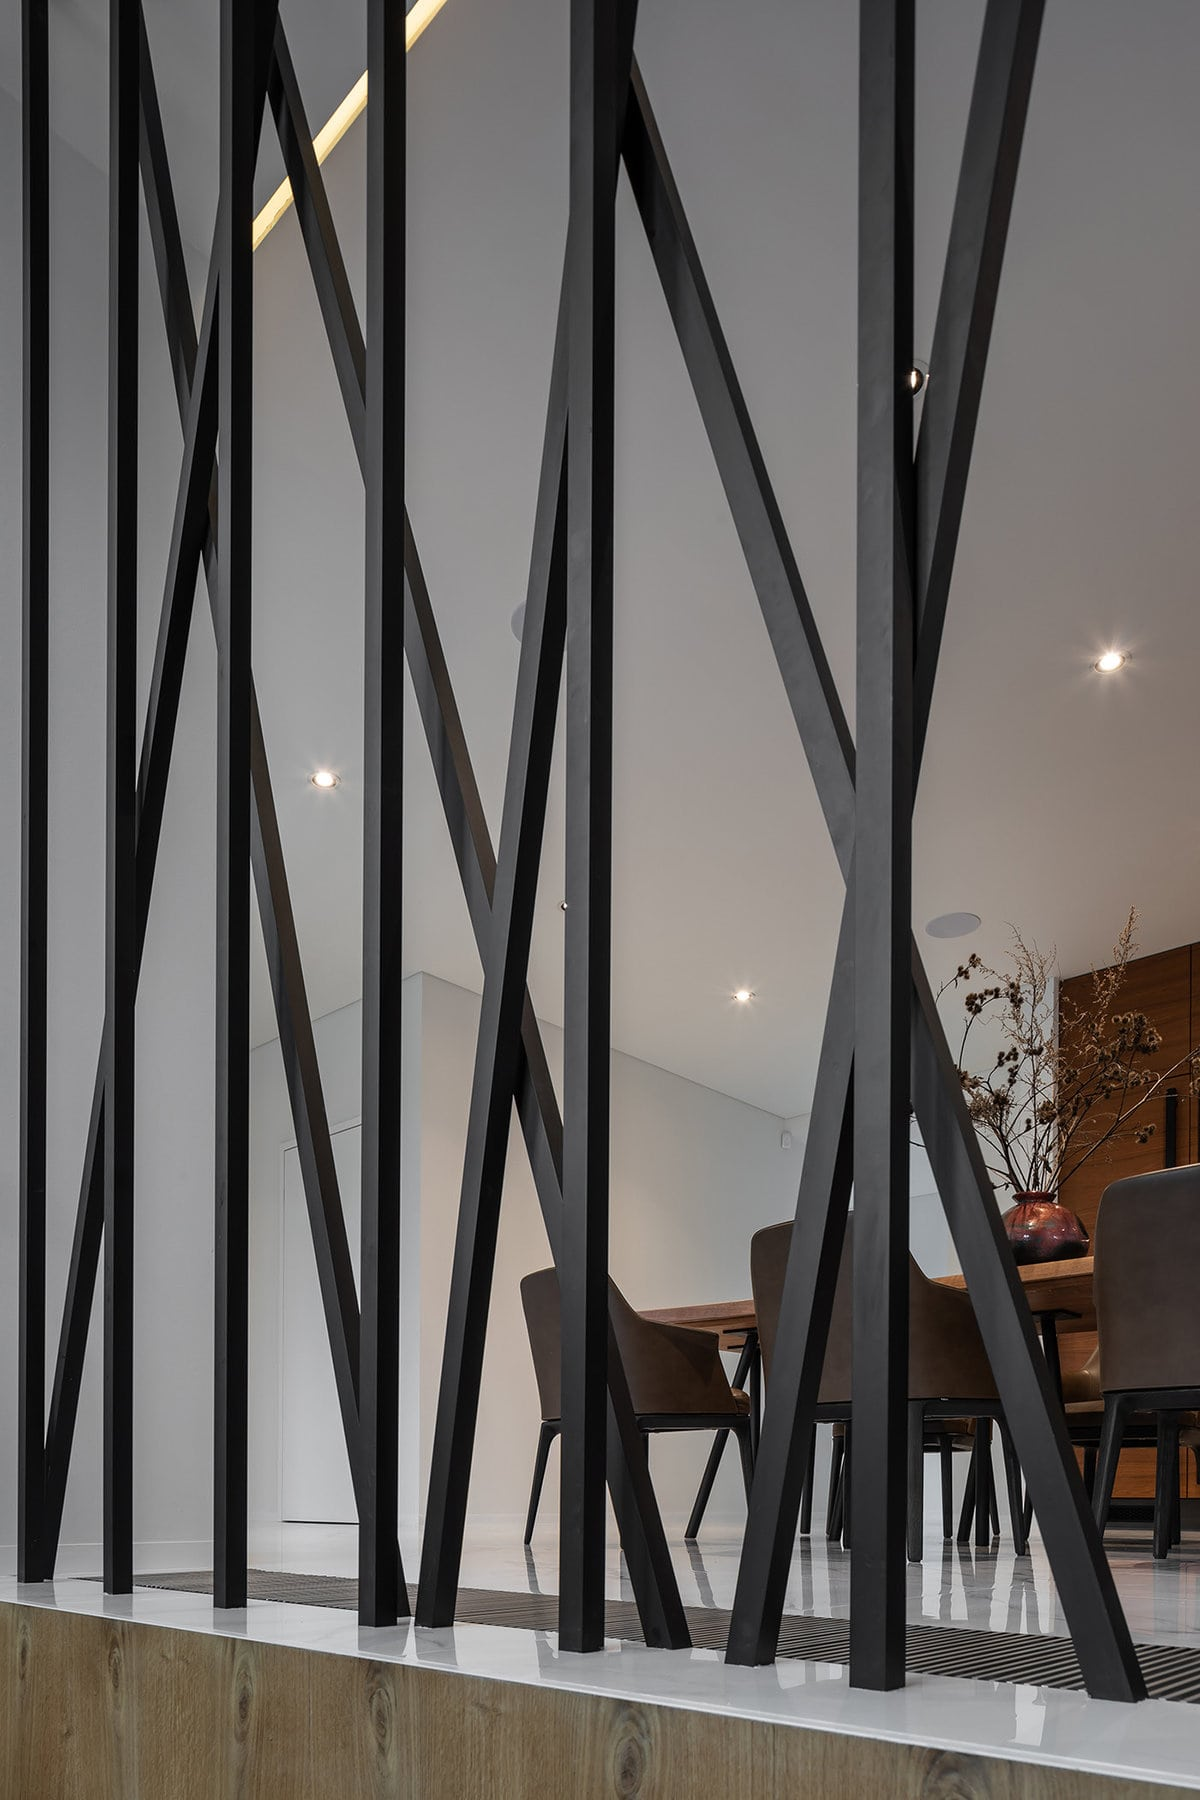 This is a close look at that decorative wall of thin black rods from the side of the staircase looking into the dining area.